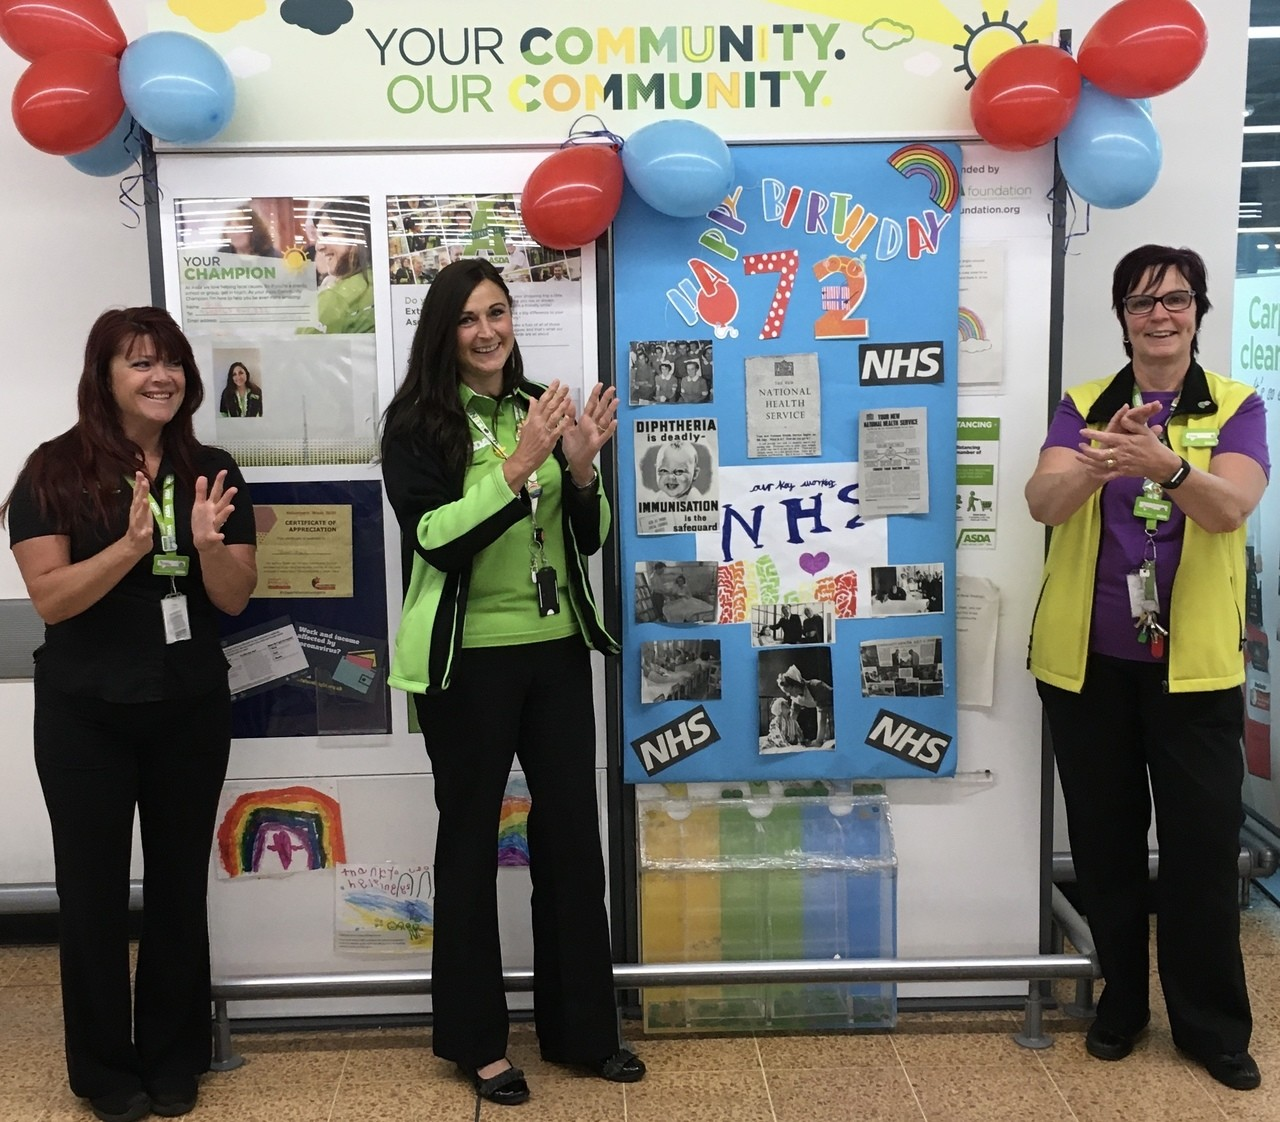 Happy 72nd Birthday to our beloved NHS From everyone at ASDA Longwell Green . | Asda Longwell Green